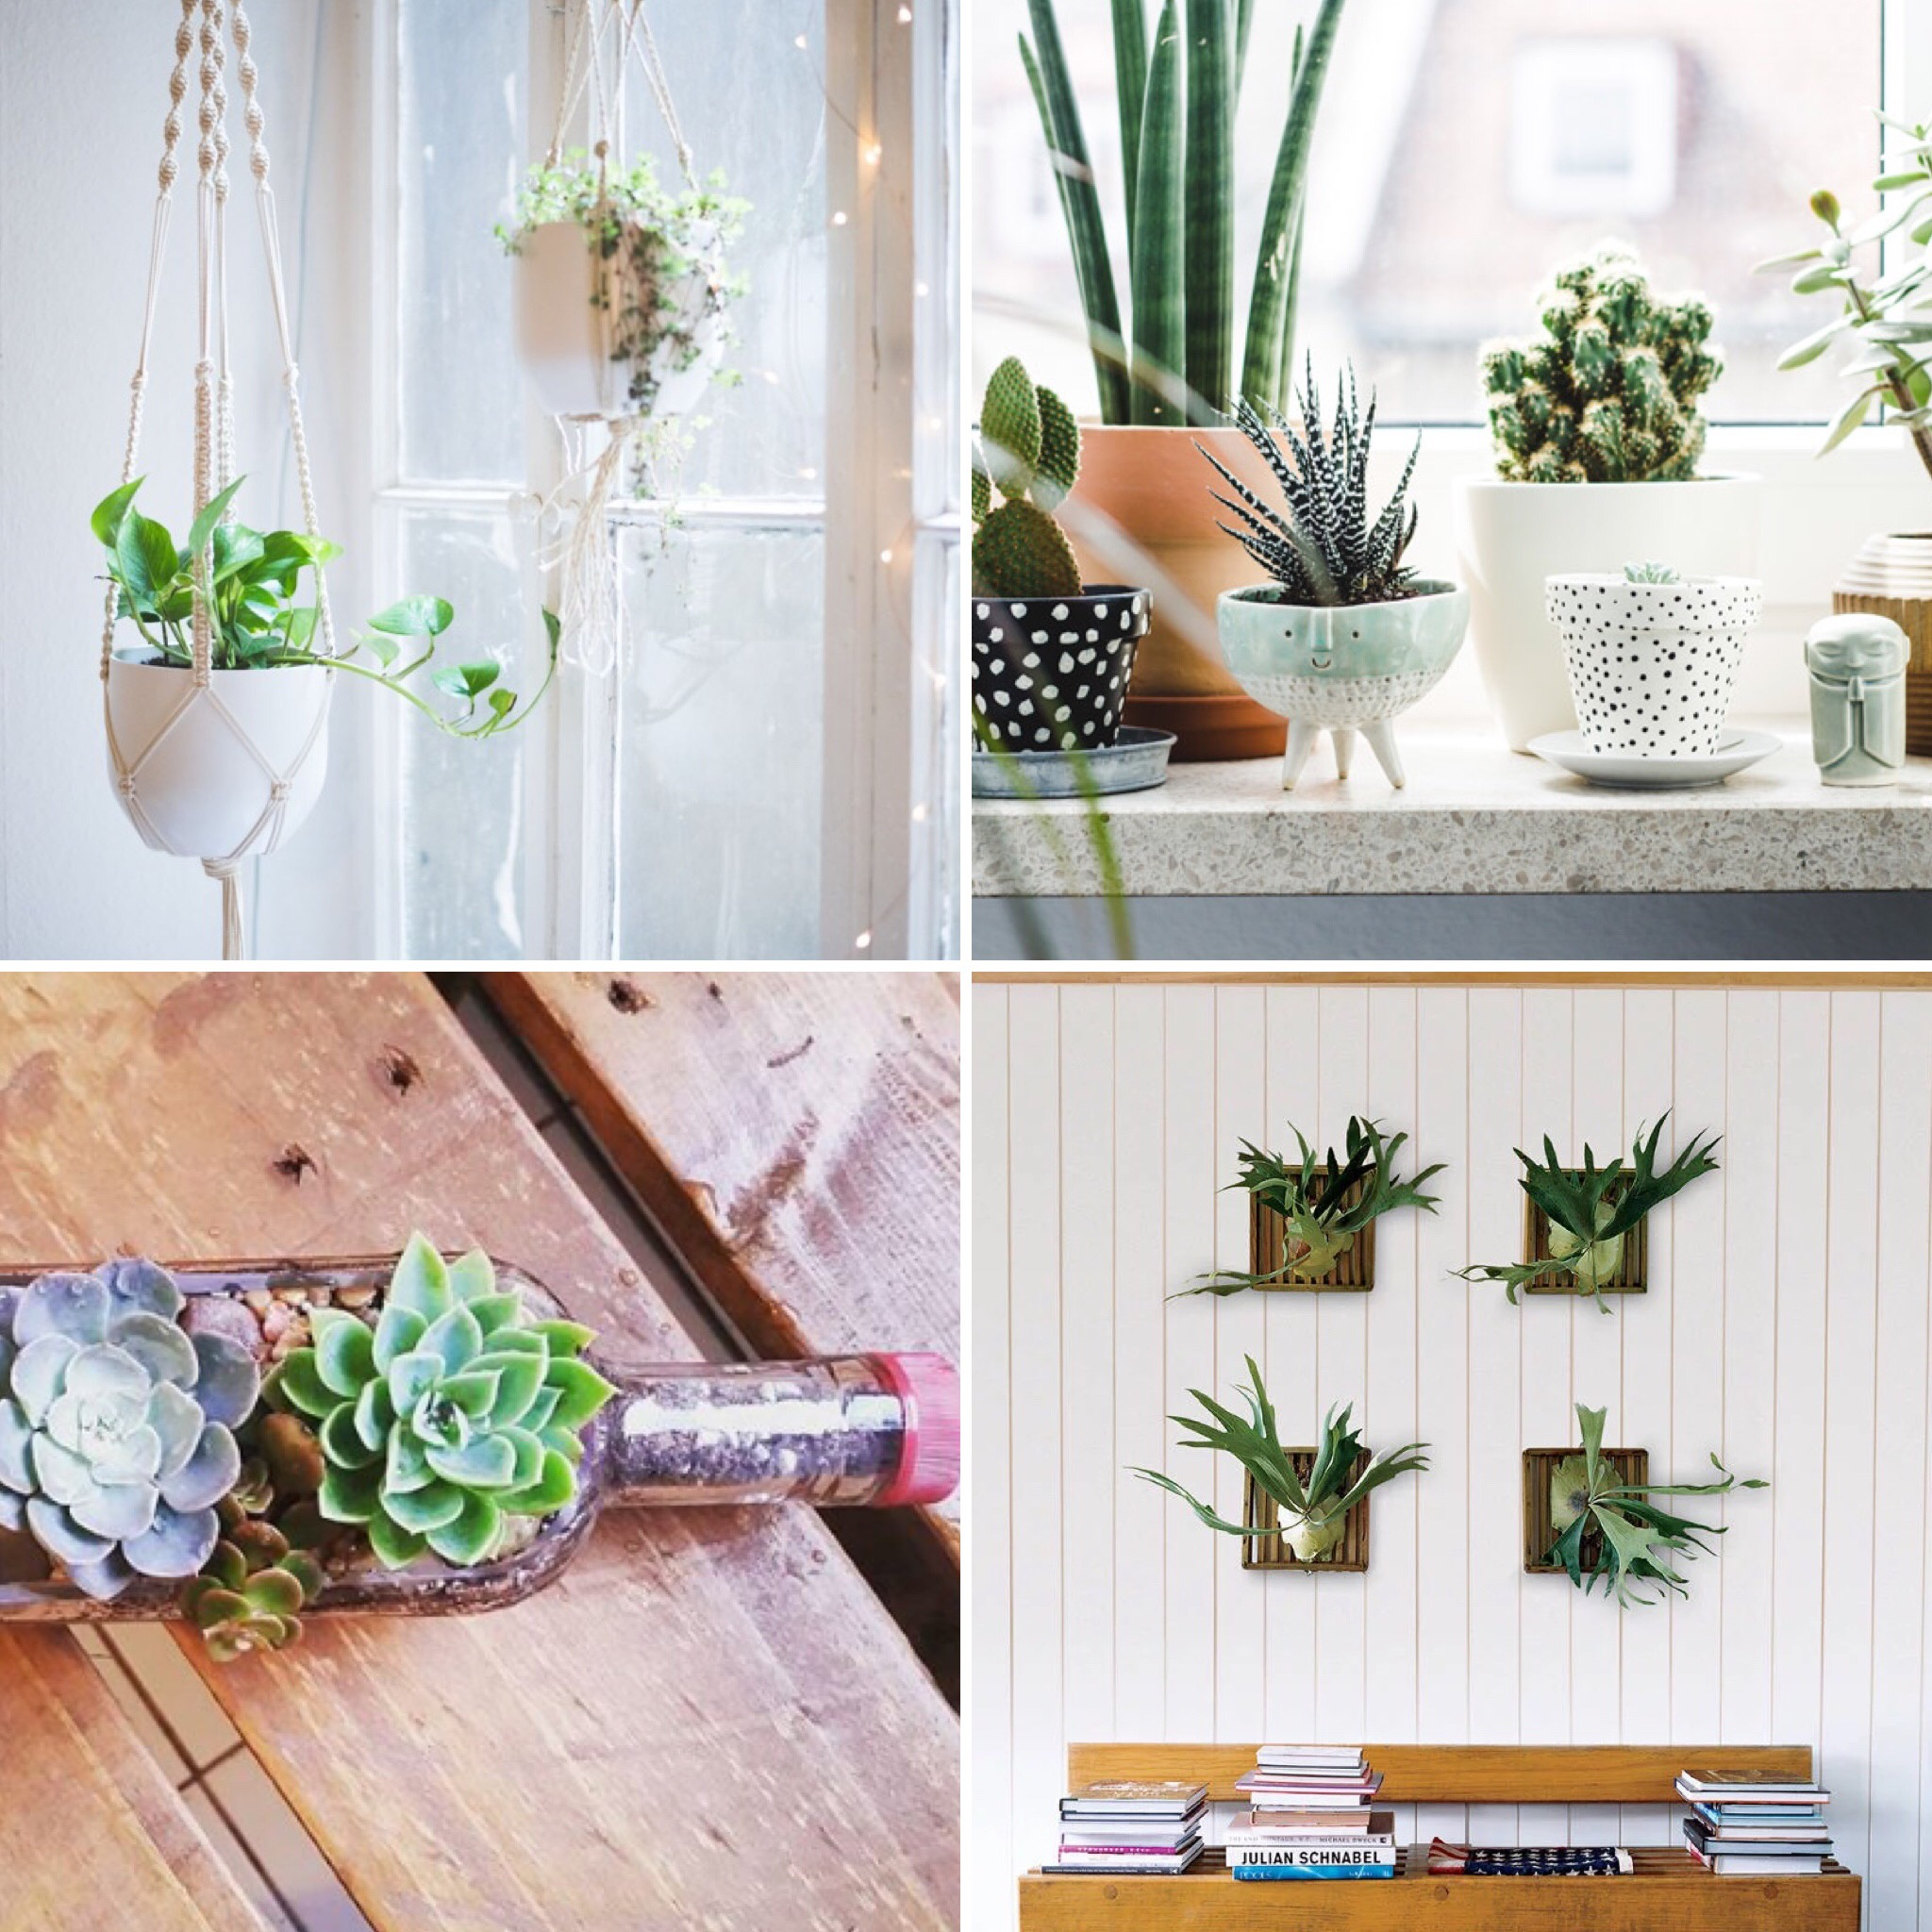 Trending Now:     Macrame Planters; Hand painted pottery in a simple color palette or with copper & gold accents; Air Plants & Succulents for easy care in any space.    Give your spirit an outlet to create a new plant container for your home and reap the benefits daily. Noho Designs LOVES  Once Again Succulents  in Waimanalo! Check them out to see how you can create some green mana for your hale!  Other photo credits go to heylilahey.com & atmine.com